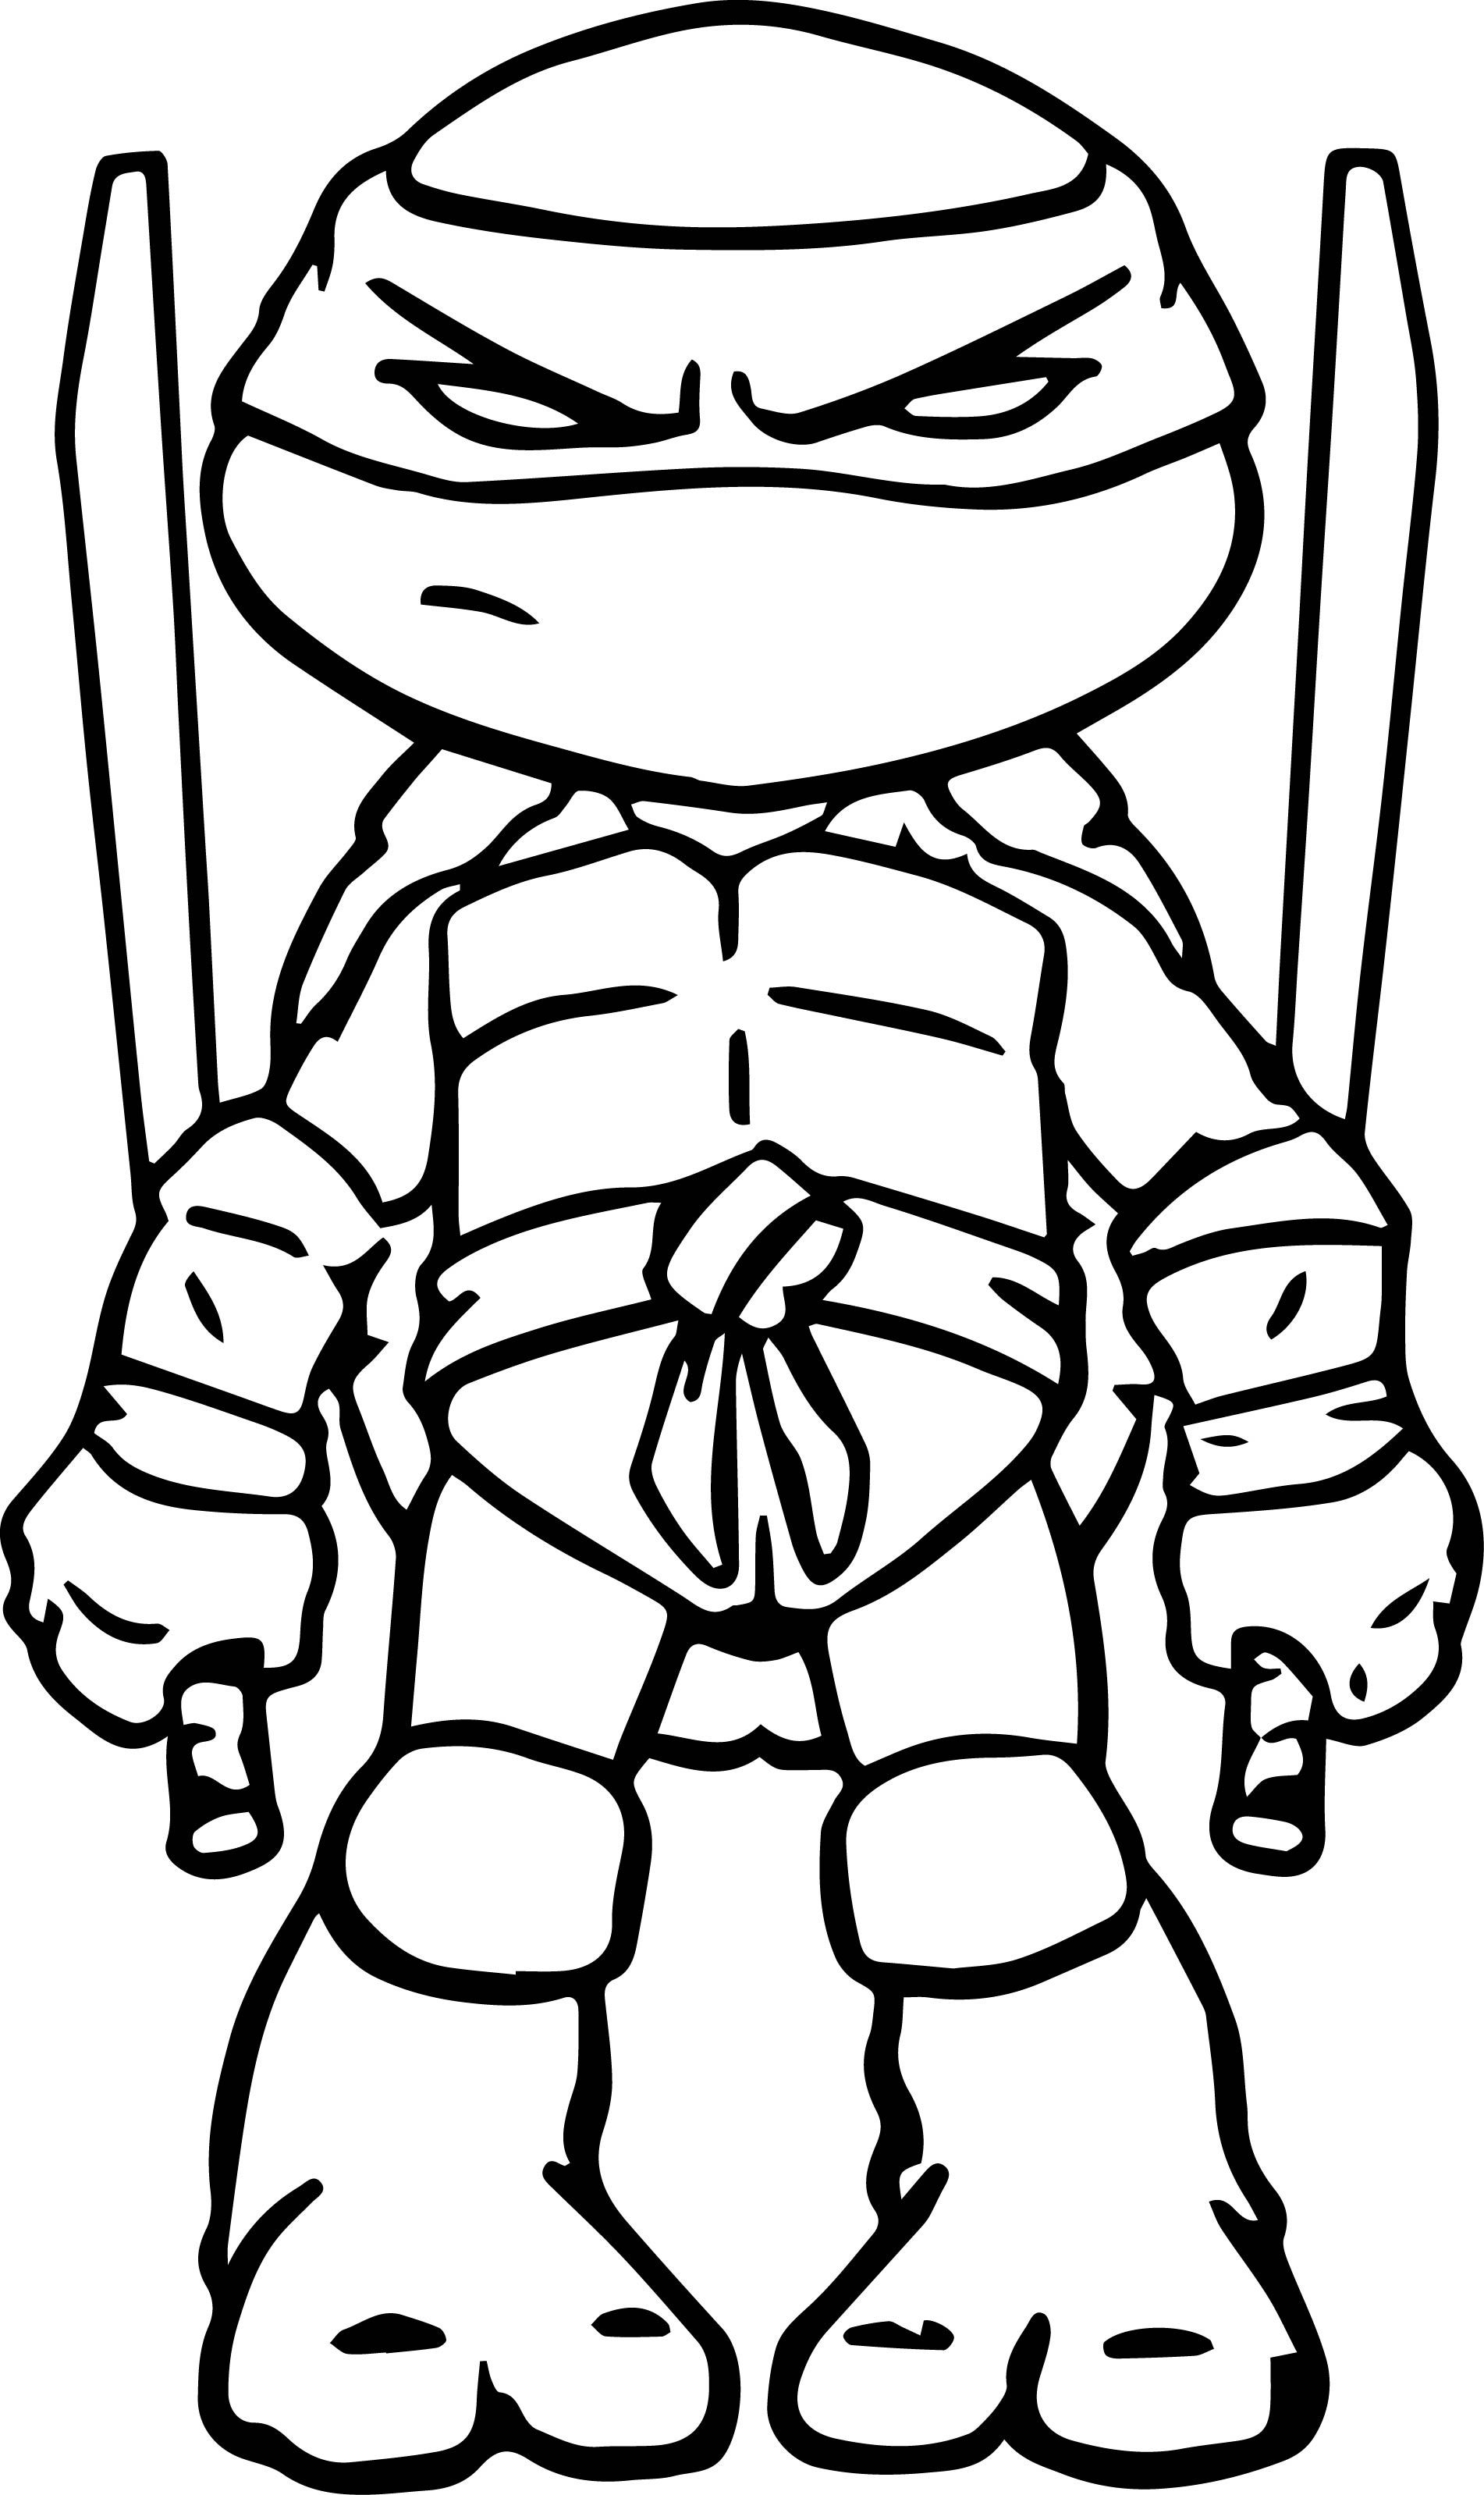 Ninja Turtles Art Coloring Page Turtle Coloring Pages Ninja